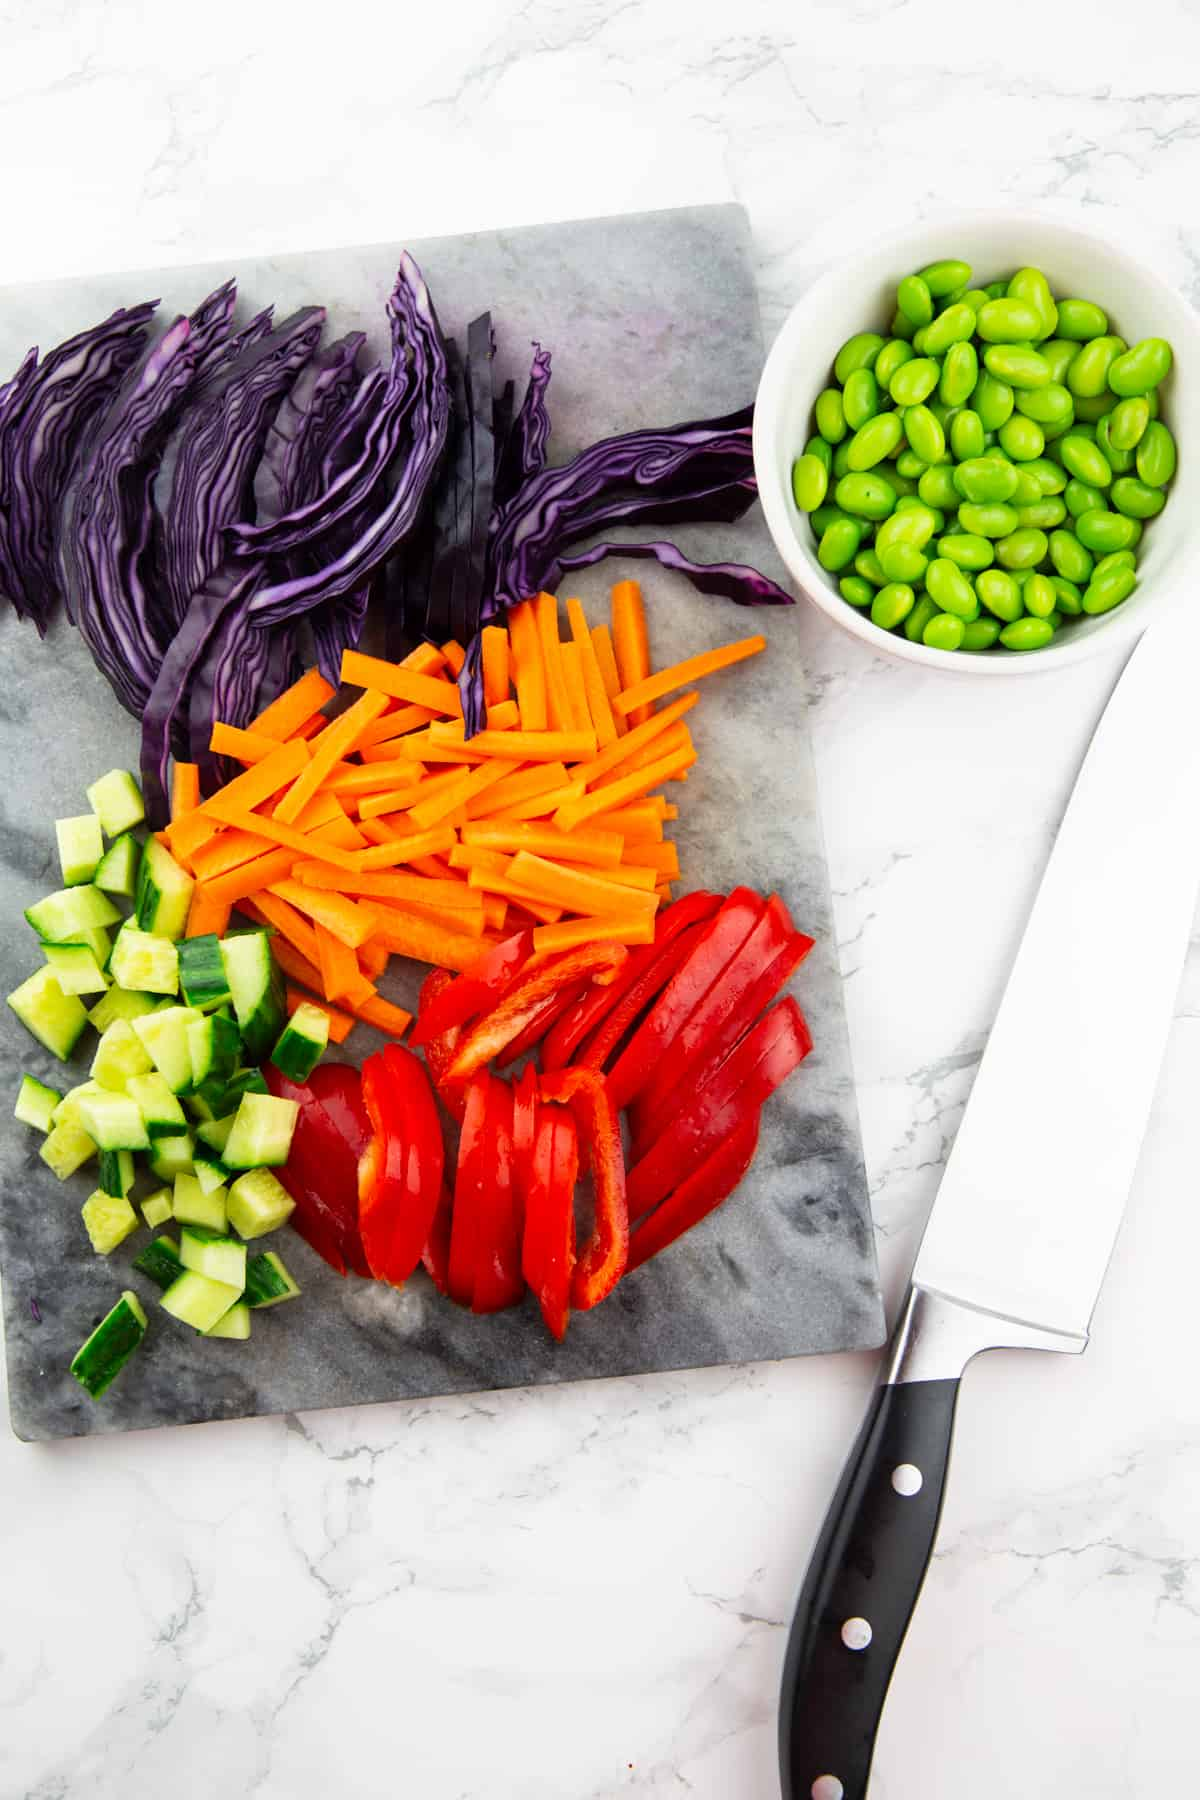 chopped up cucumber, bell pepper, carrots, and red cabbage on a cutting board